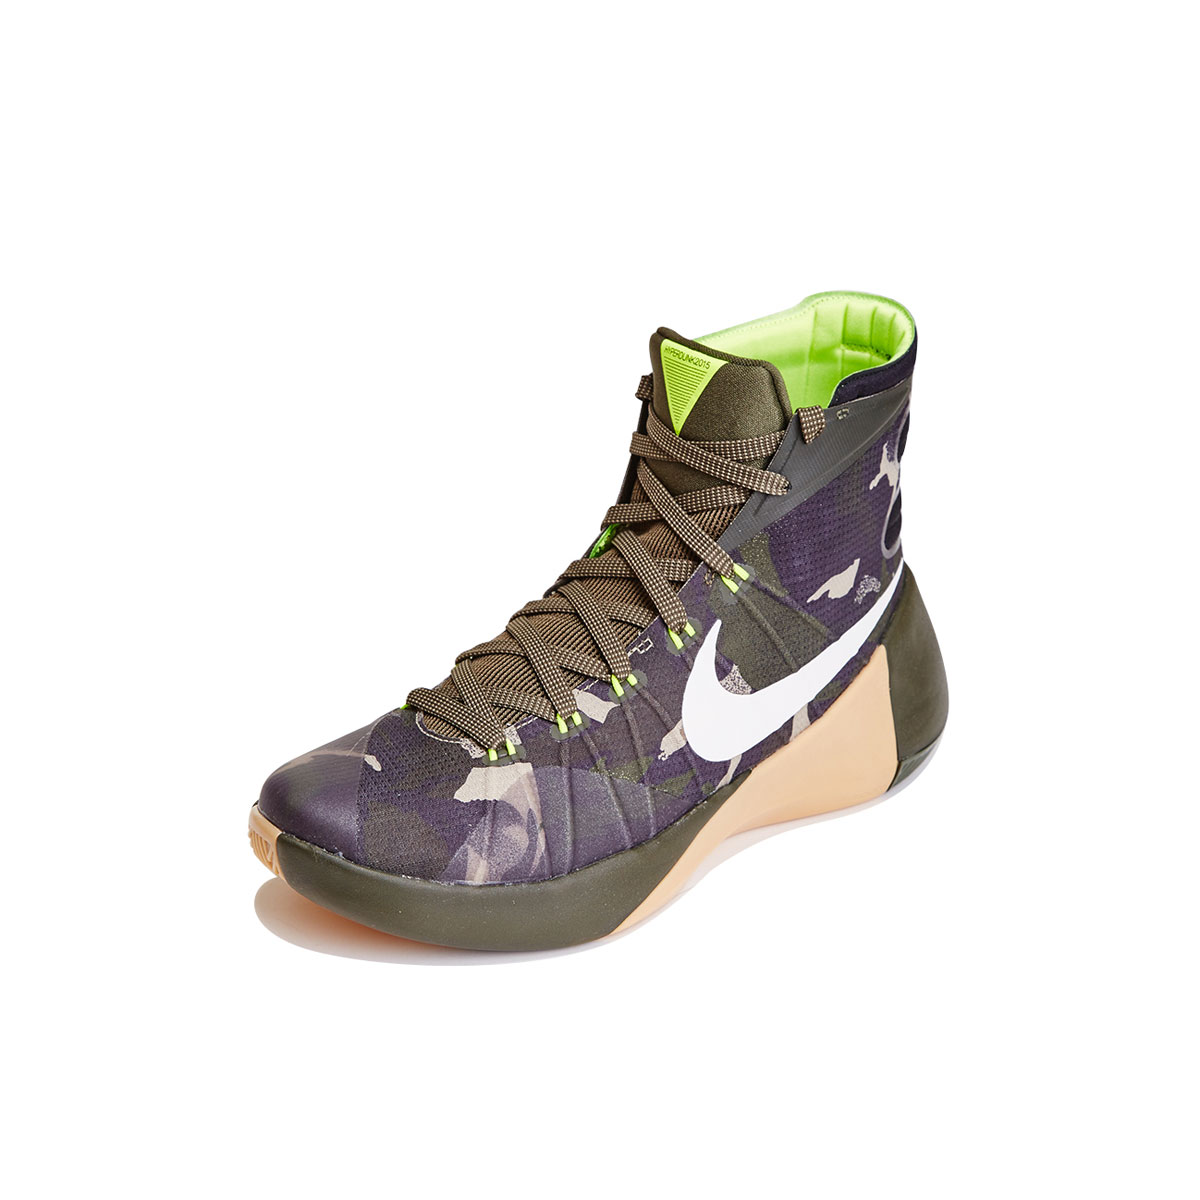 quality design 93b89 8b04e 2015 nike hyperdunk limited edition for sale